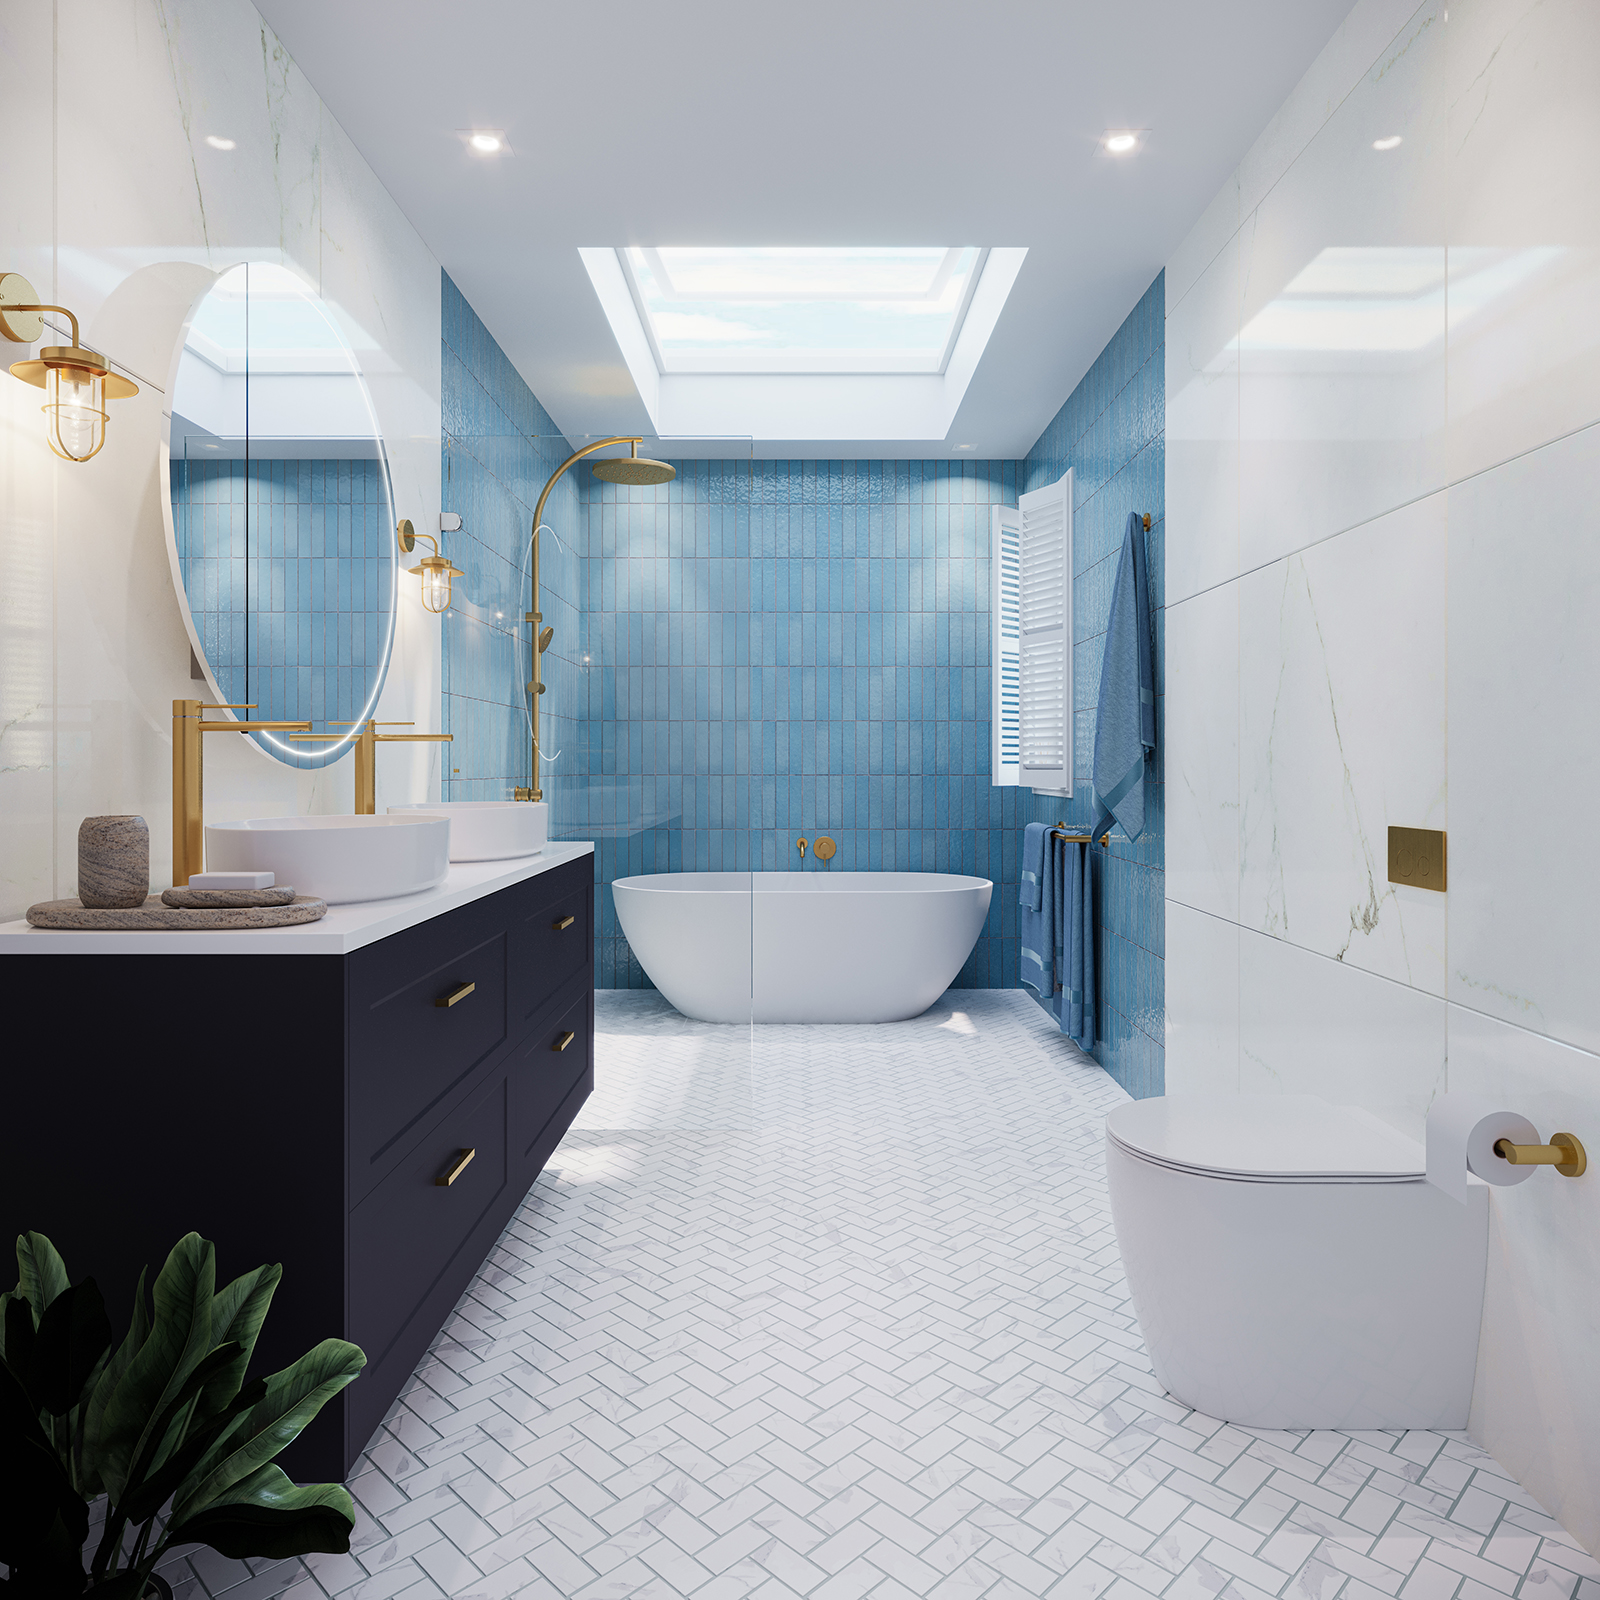 Beaumont Tiles Blue and White bathroom tiles